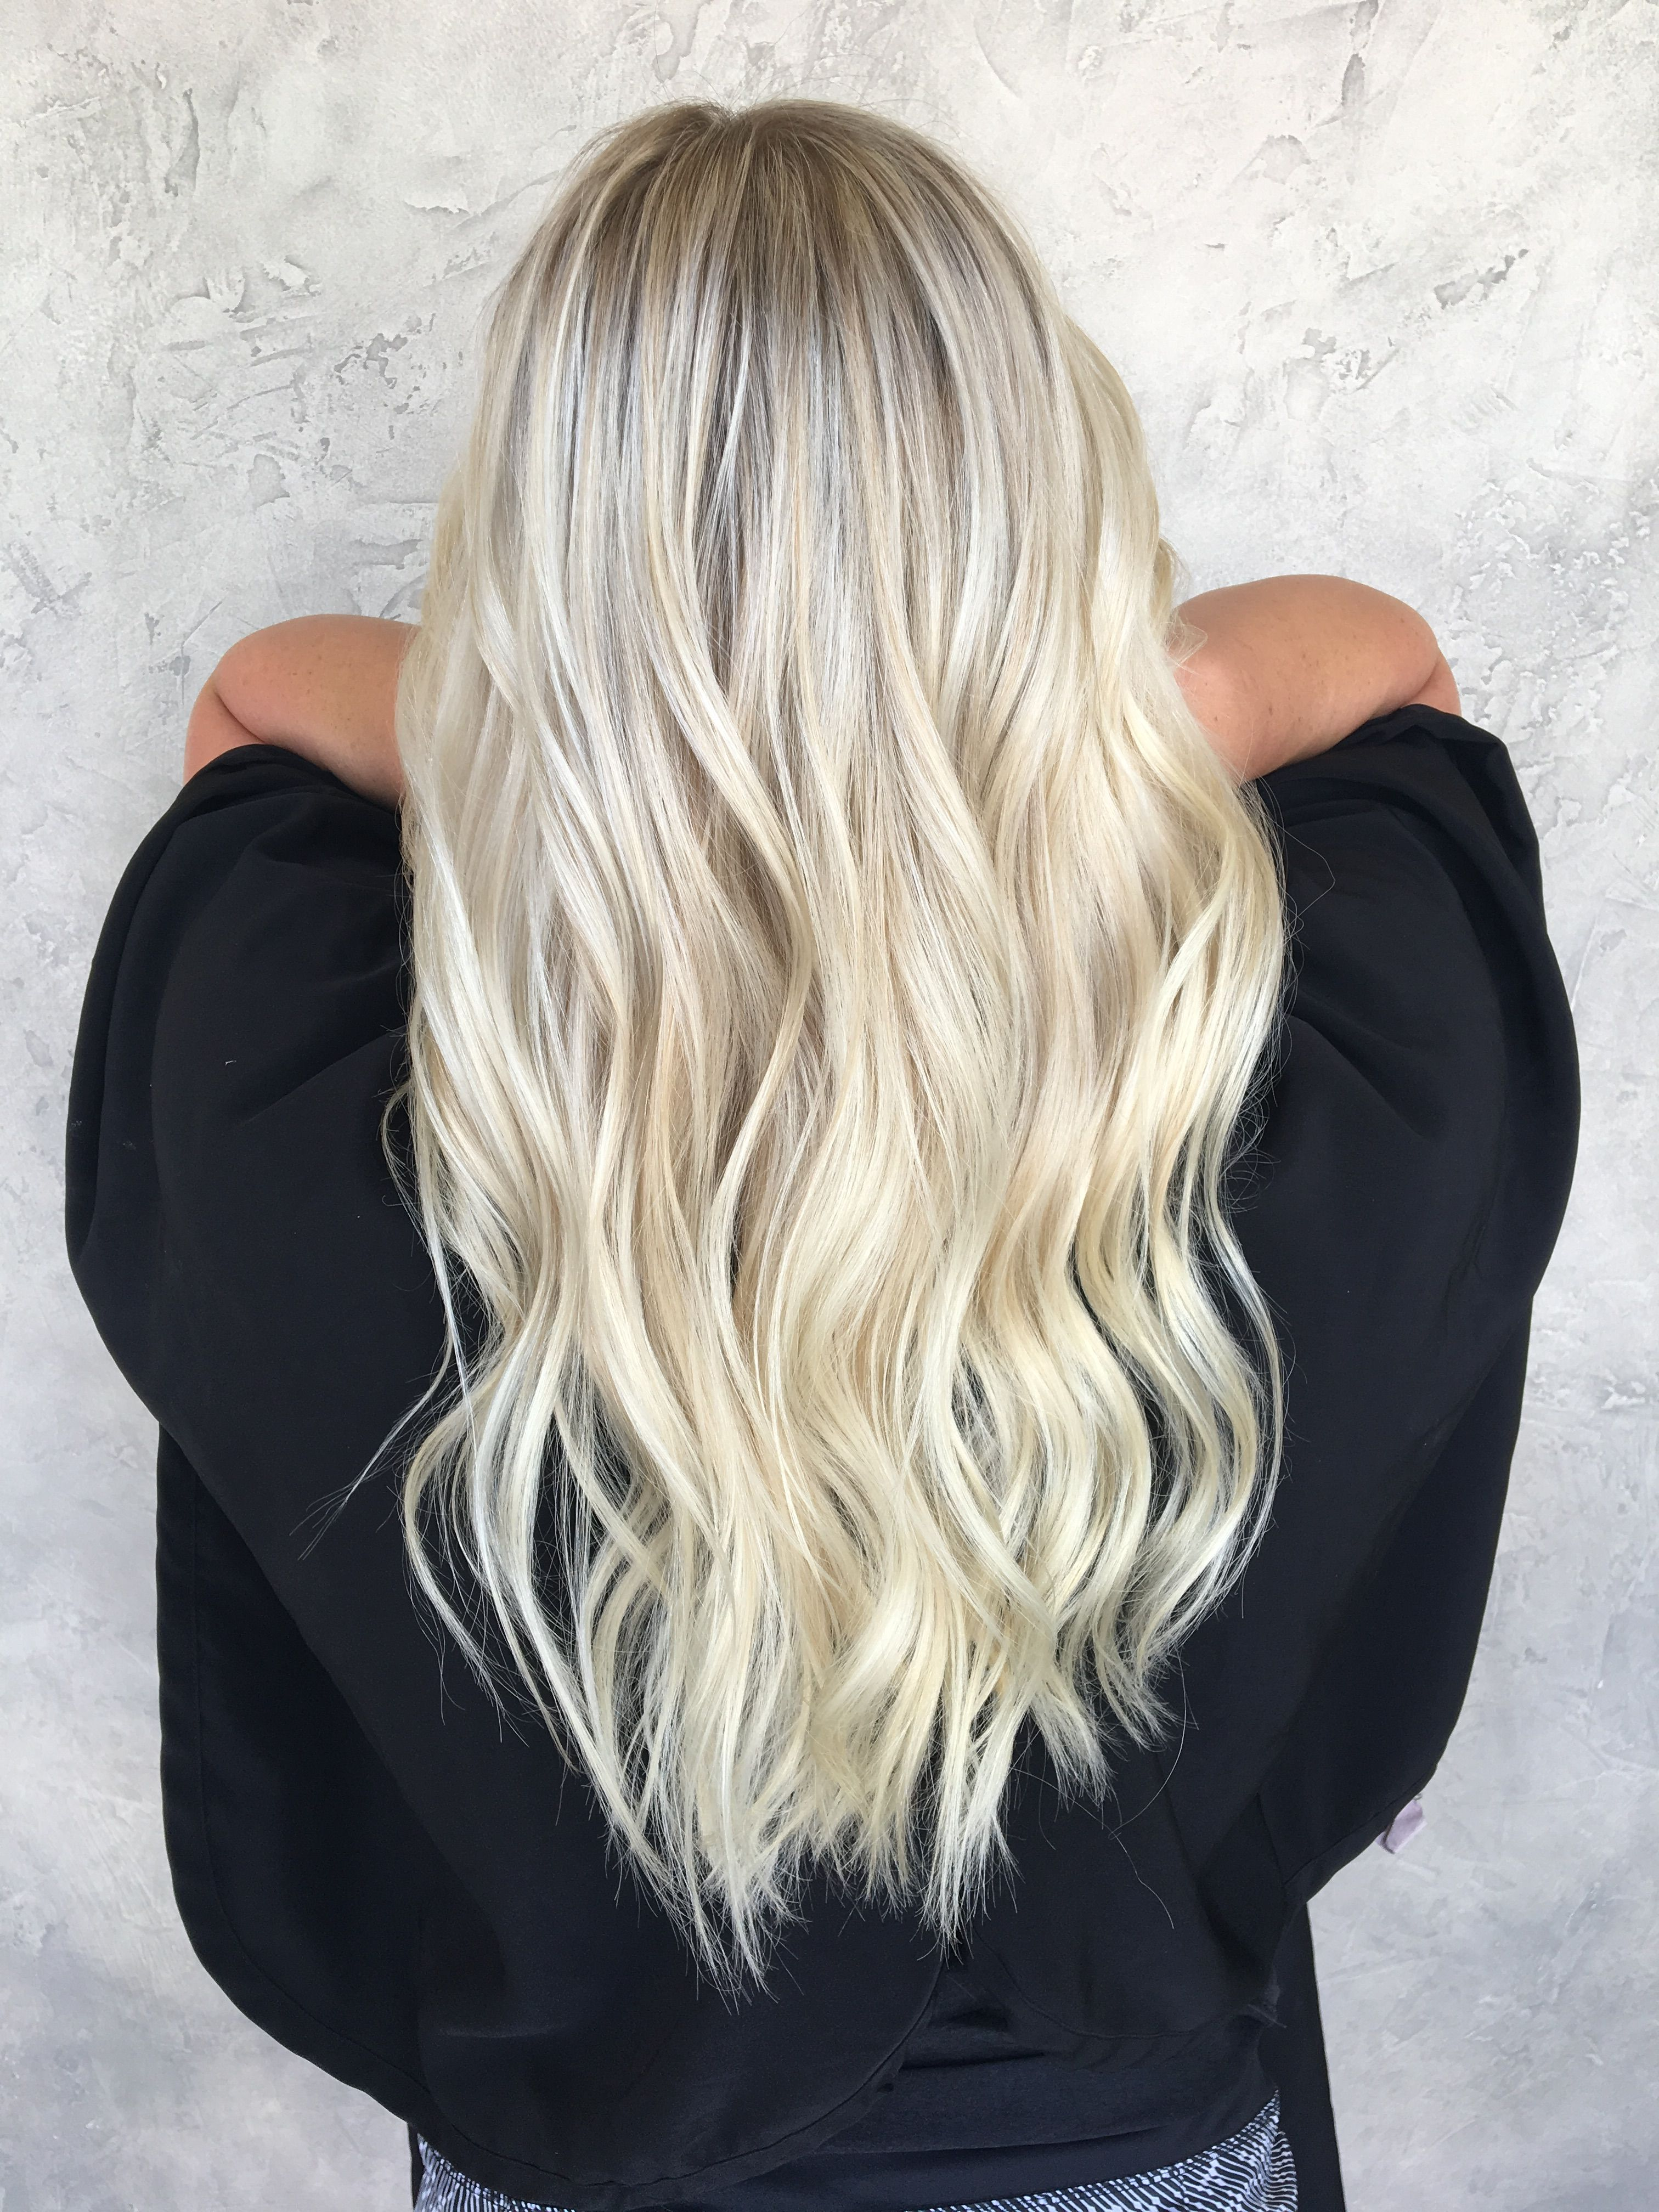 Fairest Blonde Icy Blonde Light Blonde Alexaa3 Done At